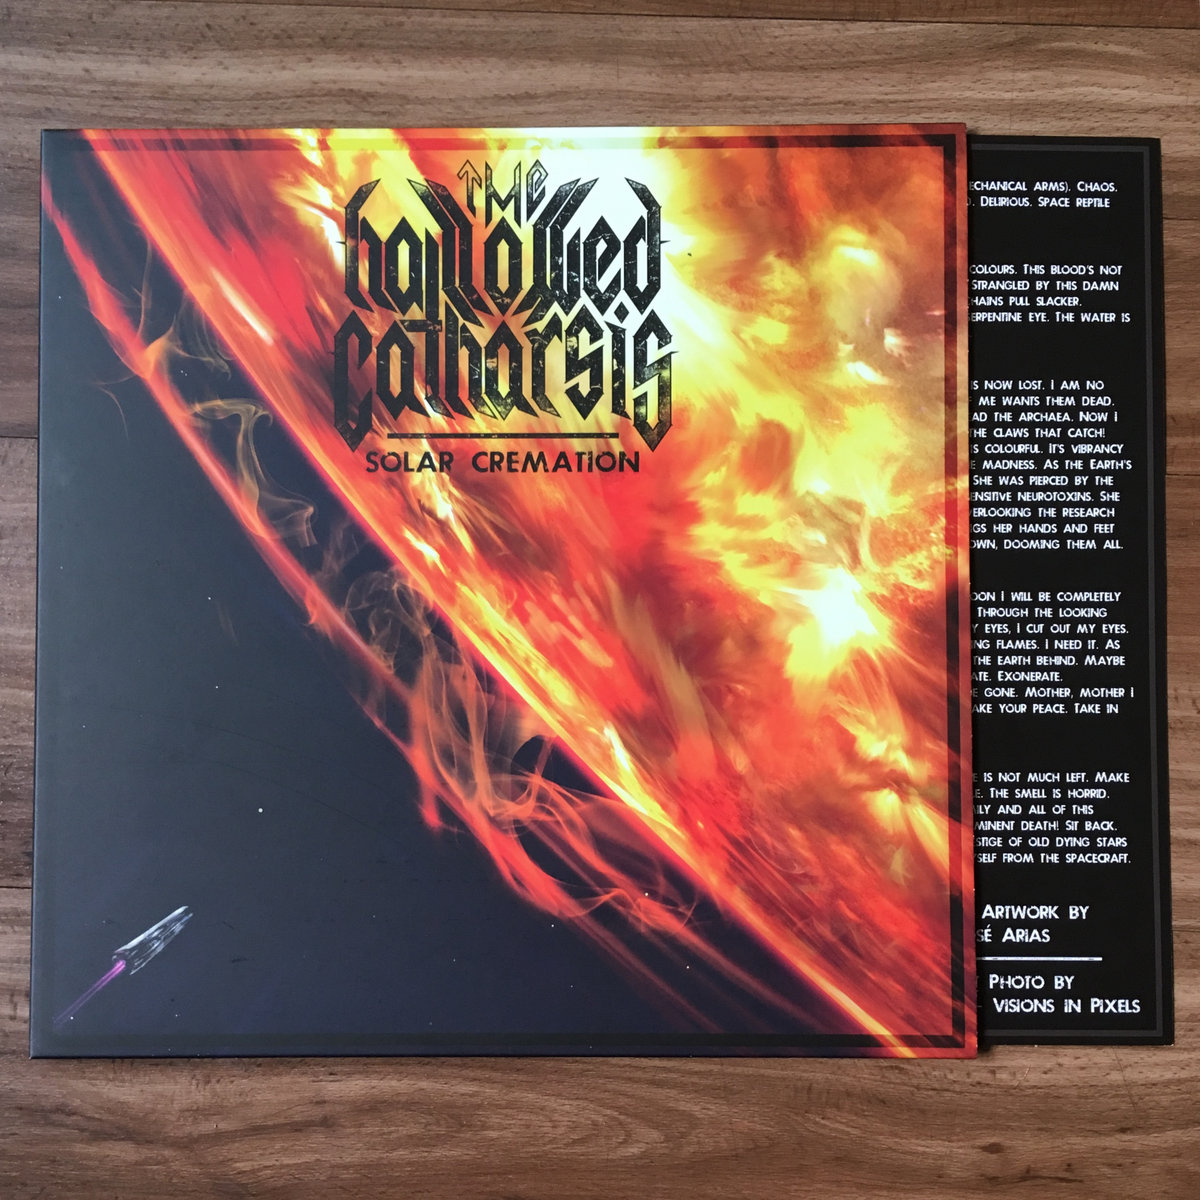 Solar Cremation   The Hallowed Catharsis